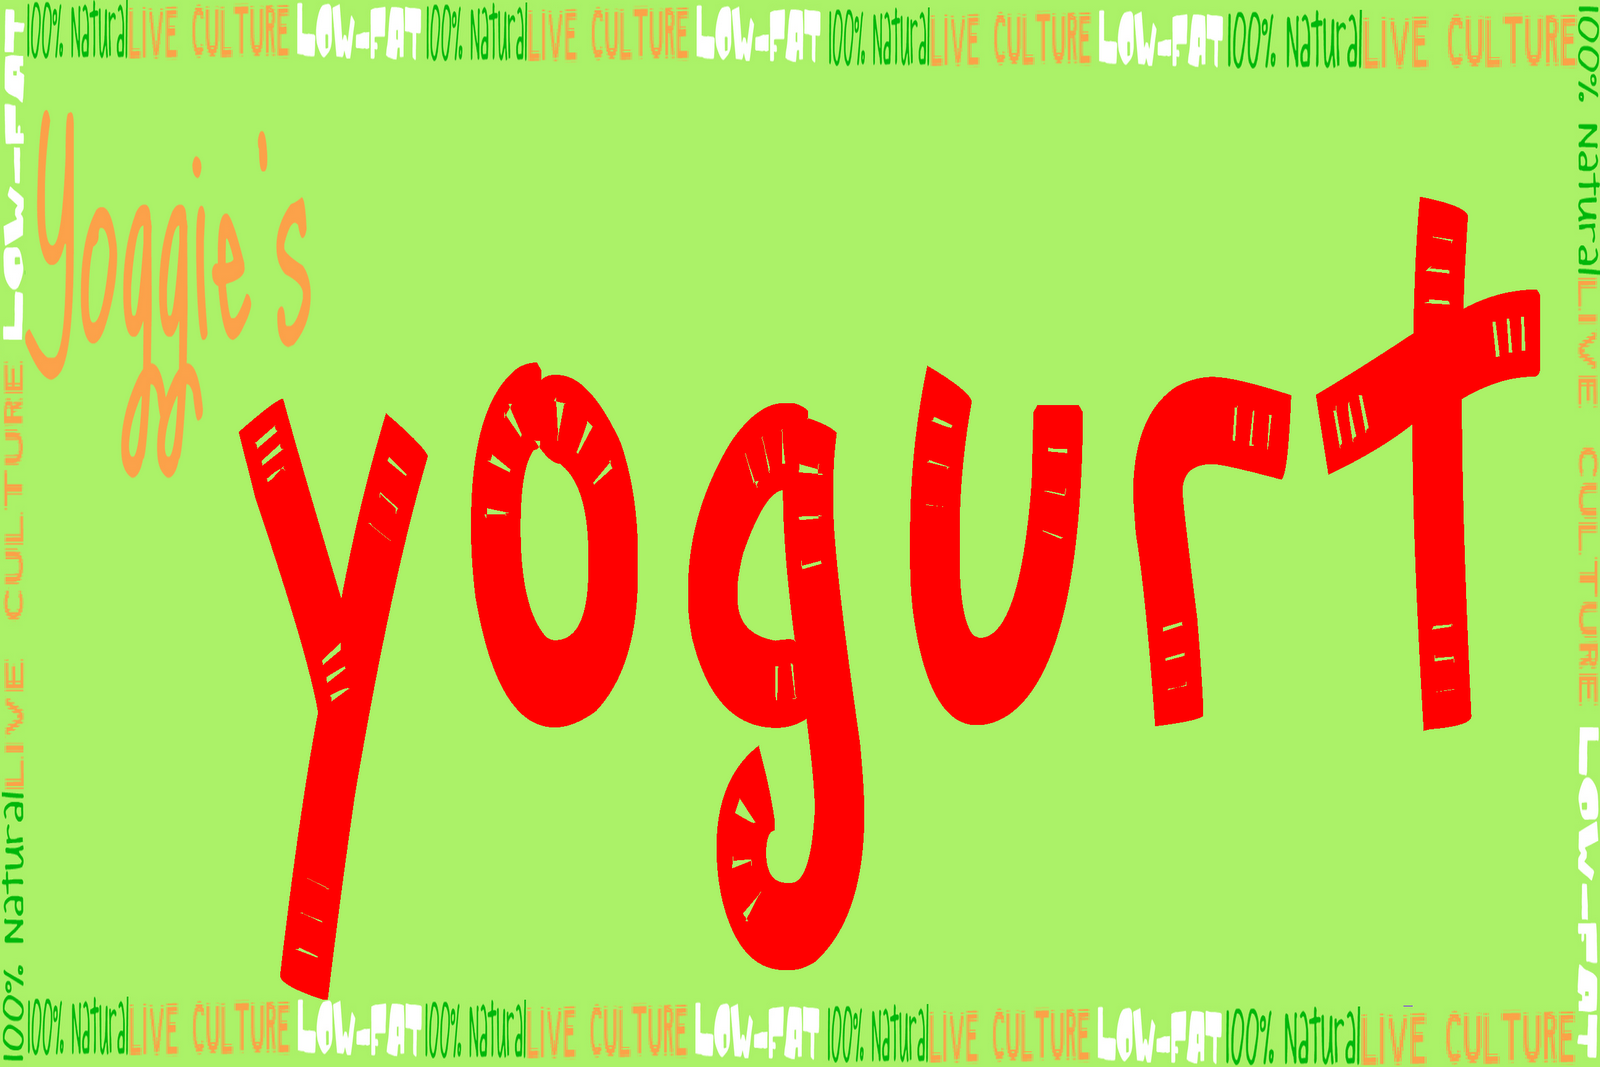 Yoggie's Yogurt by Jane